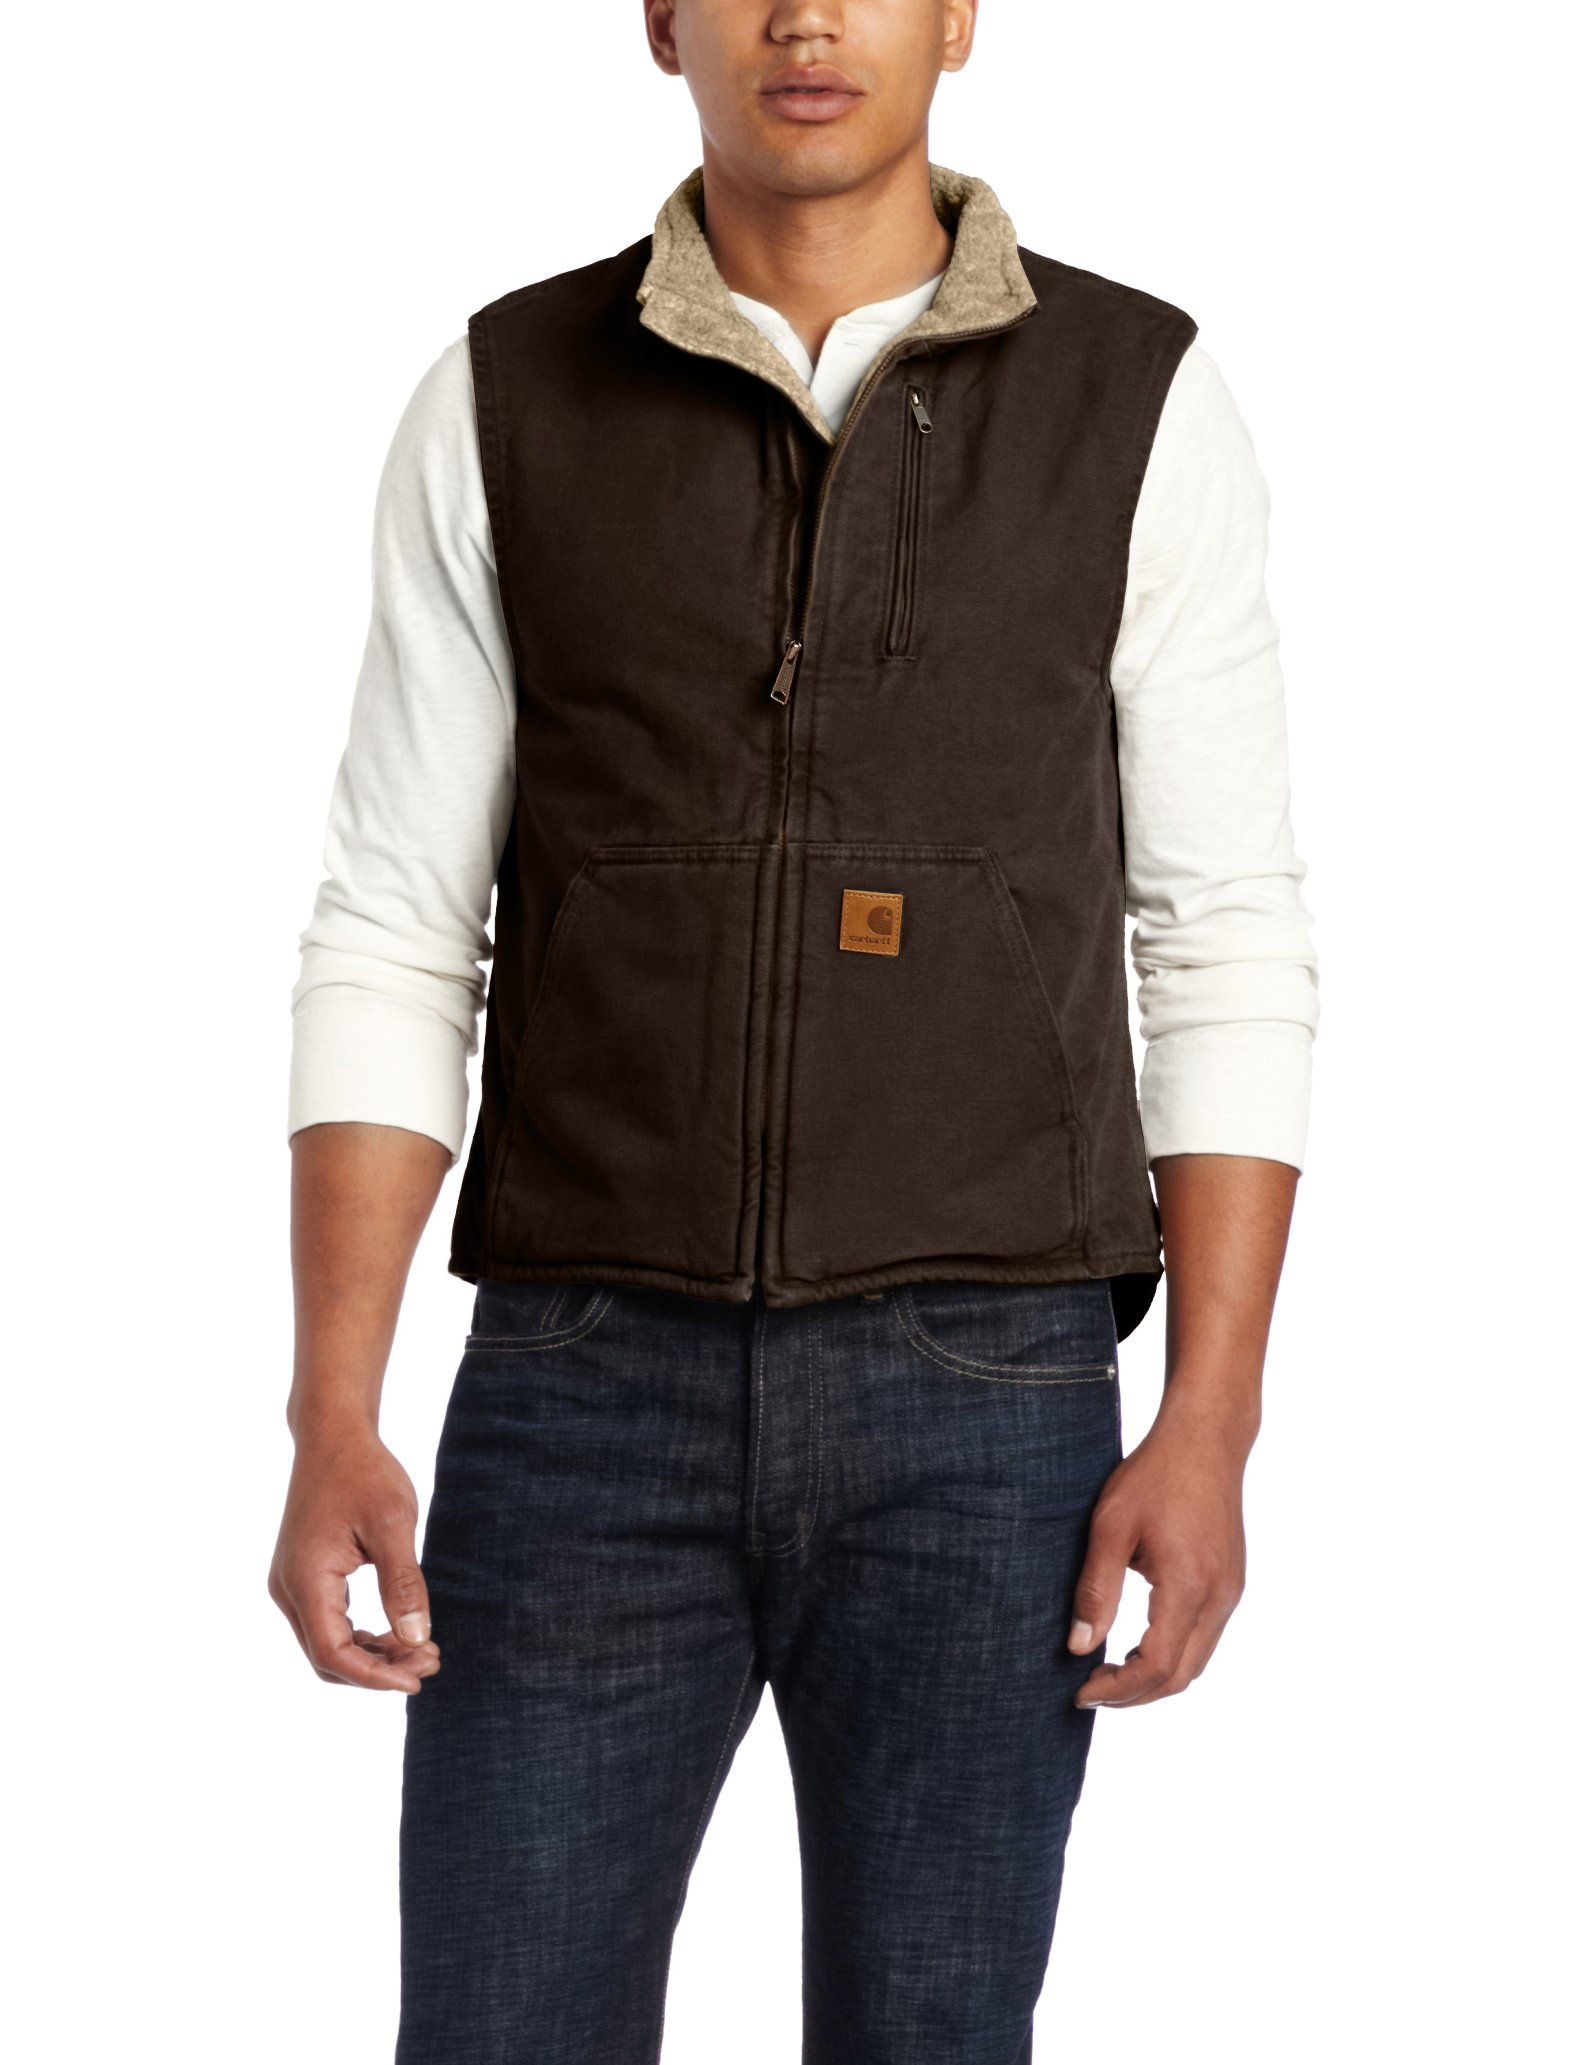 Carhartt Men's Sherpa Lined Sandstone Mock Neck Vest V33,Dark Brown,Large